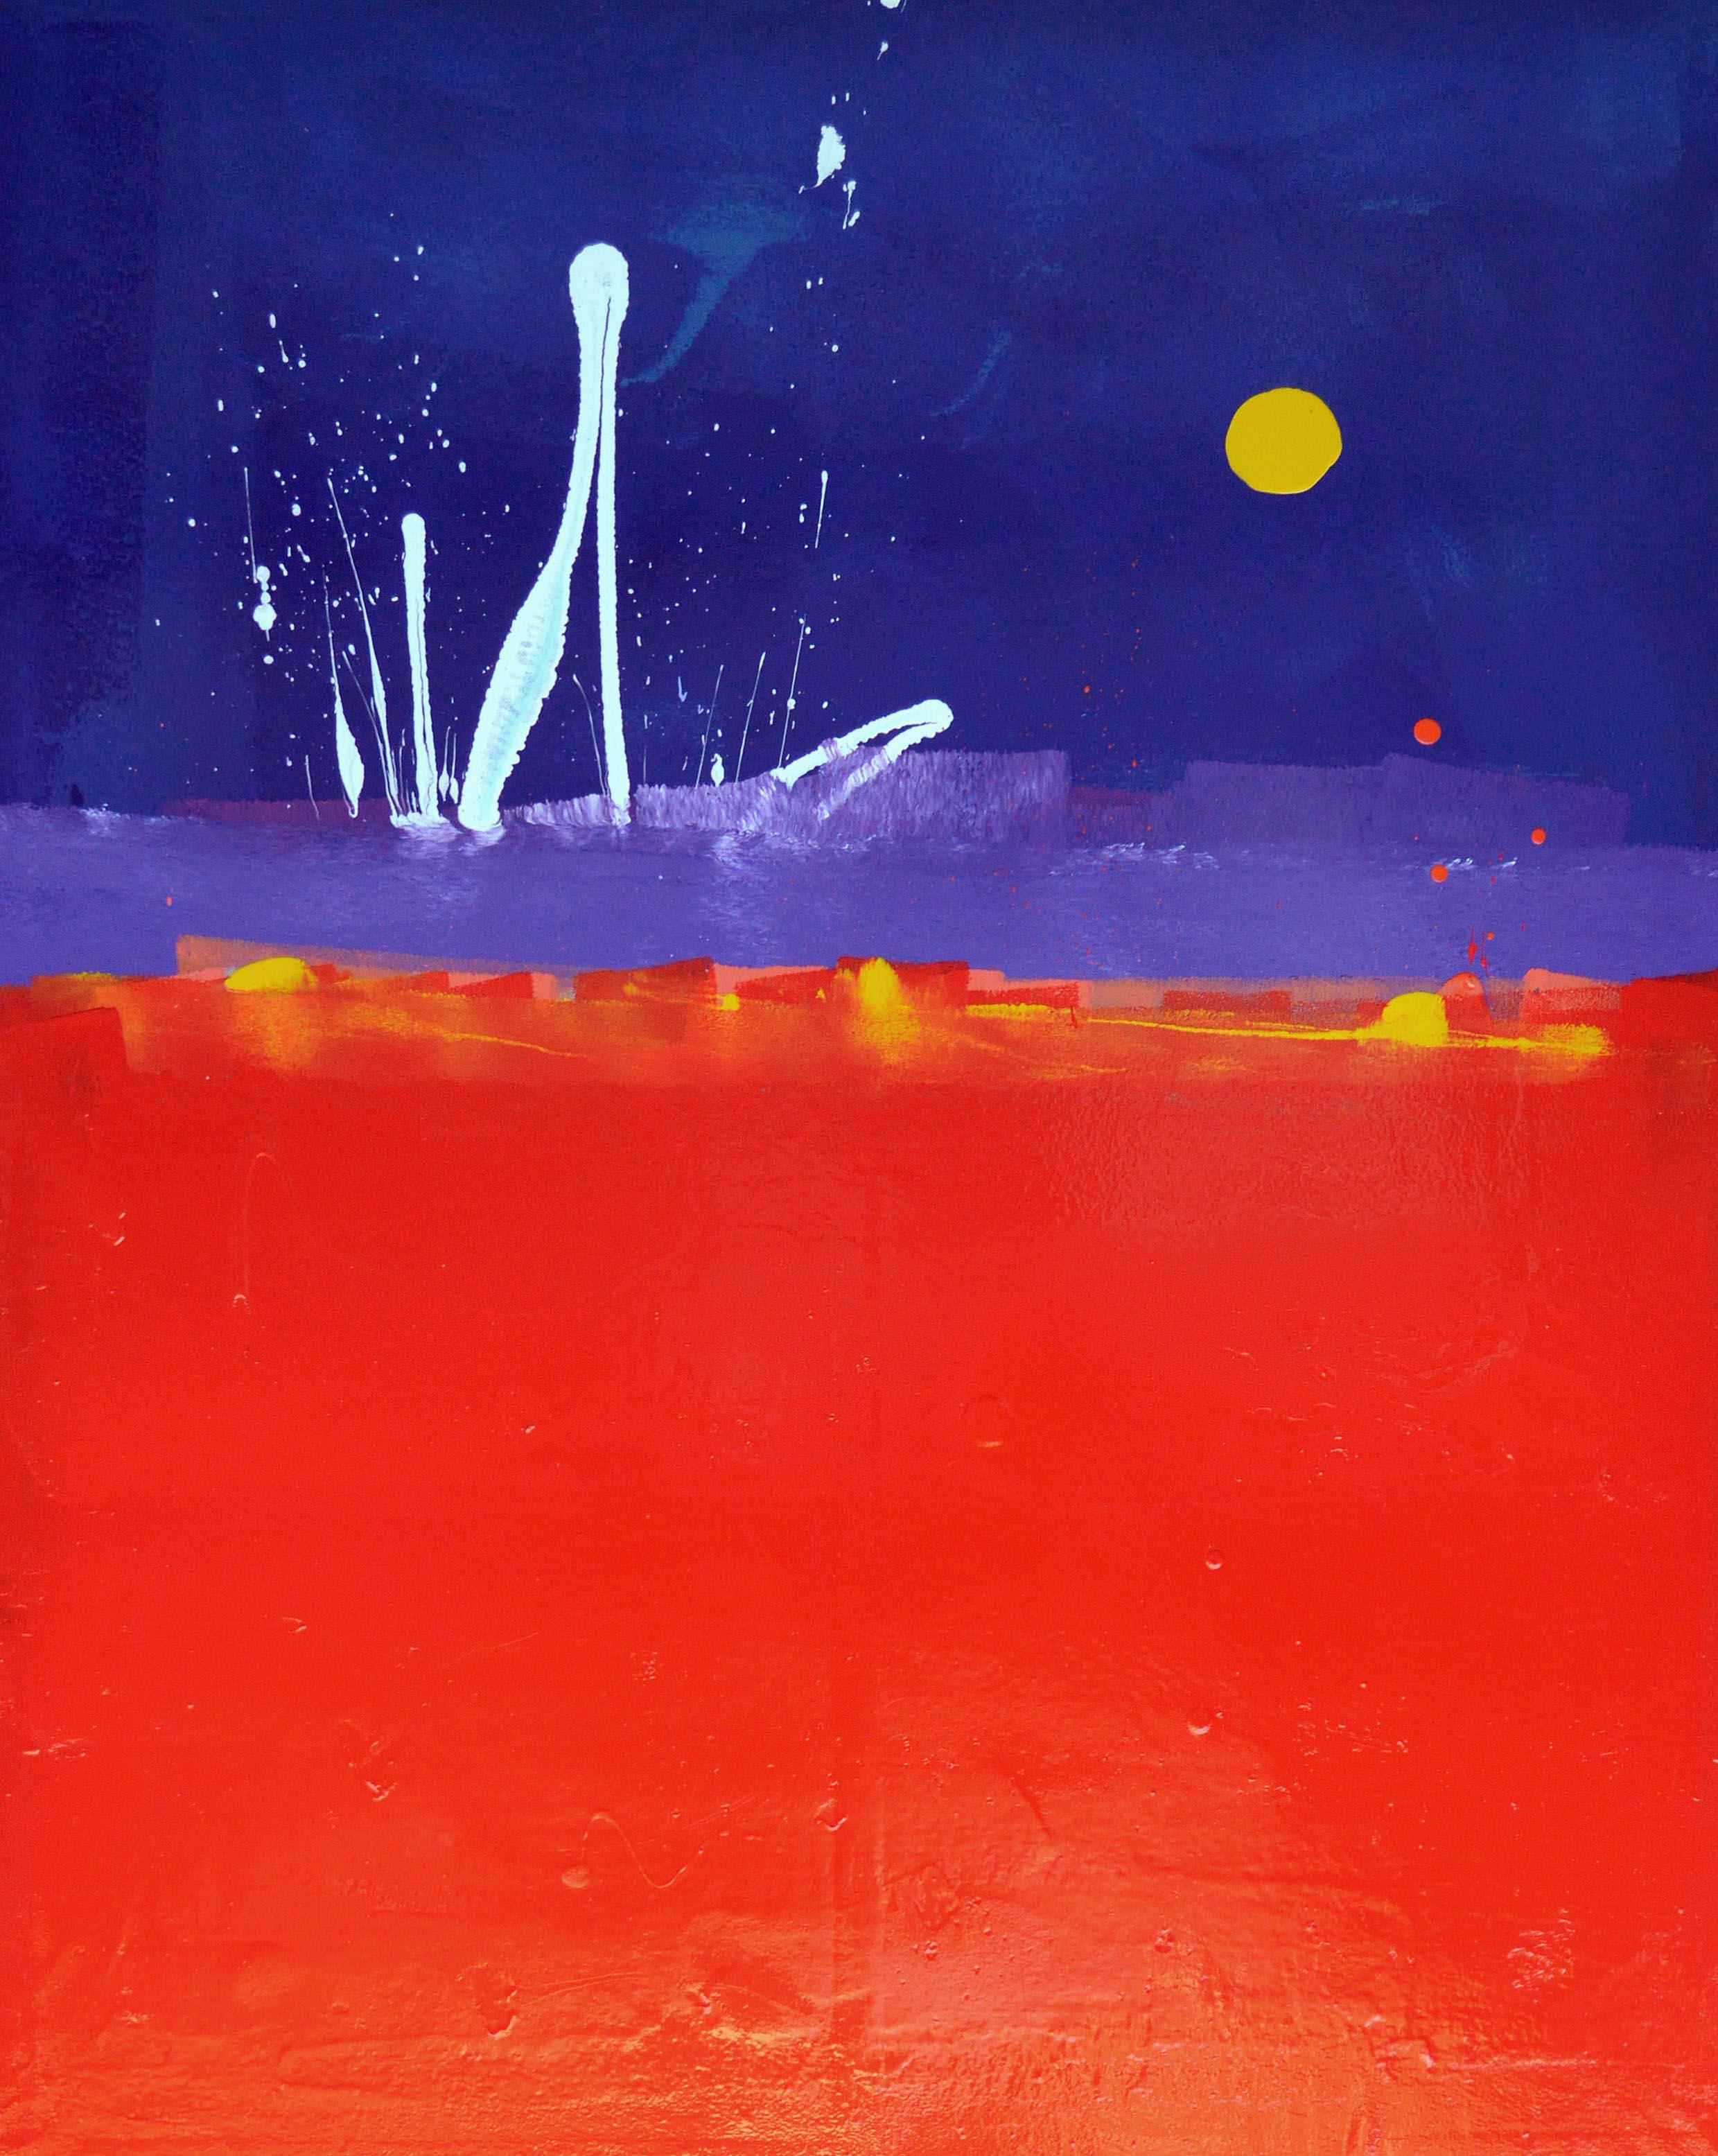 Red Red Red Sky with White Squiggle and Yellow Blob Abstract Painting